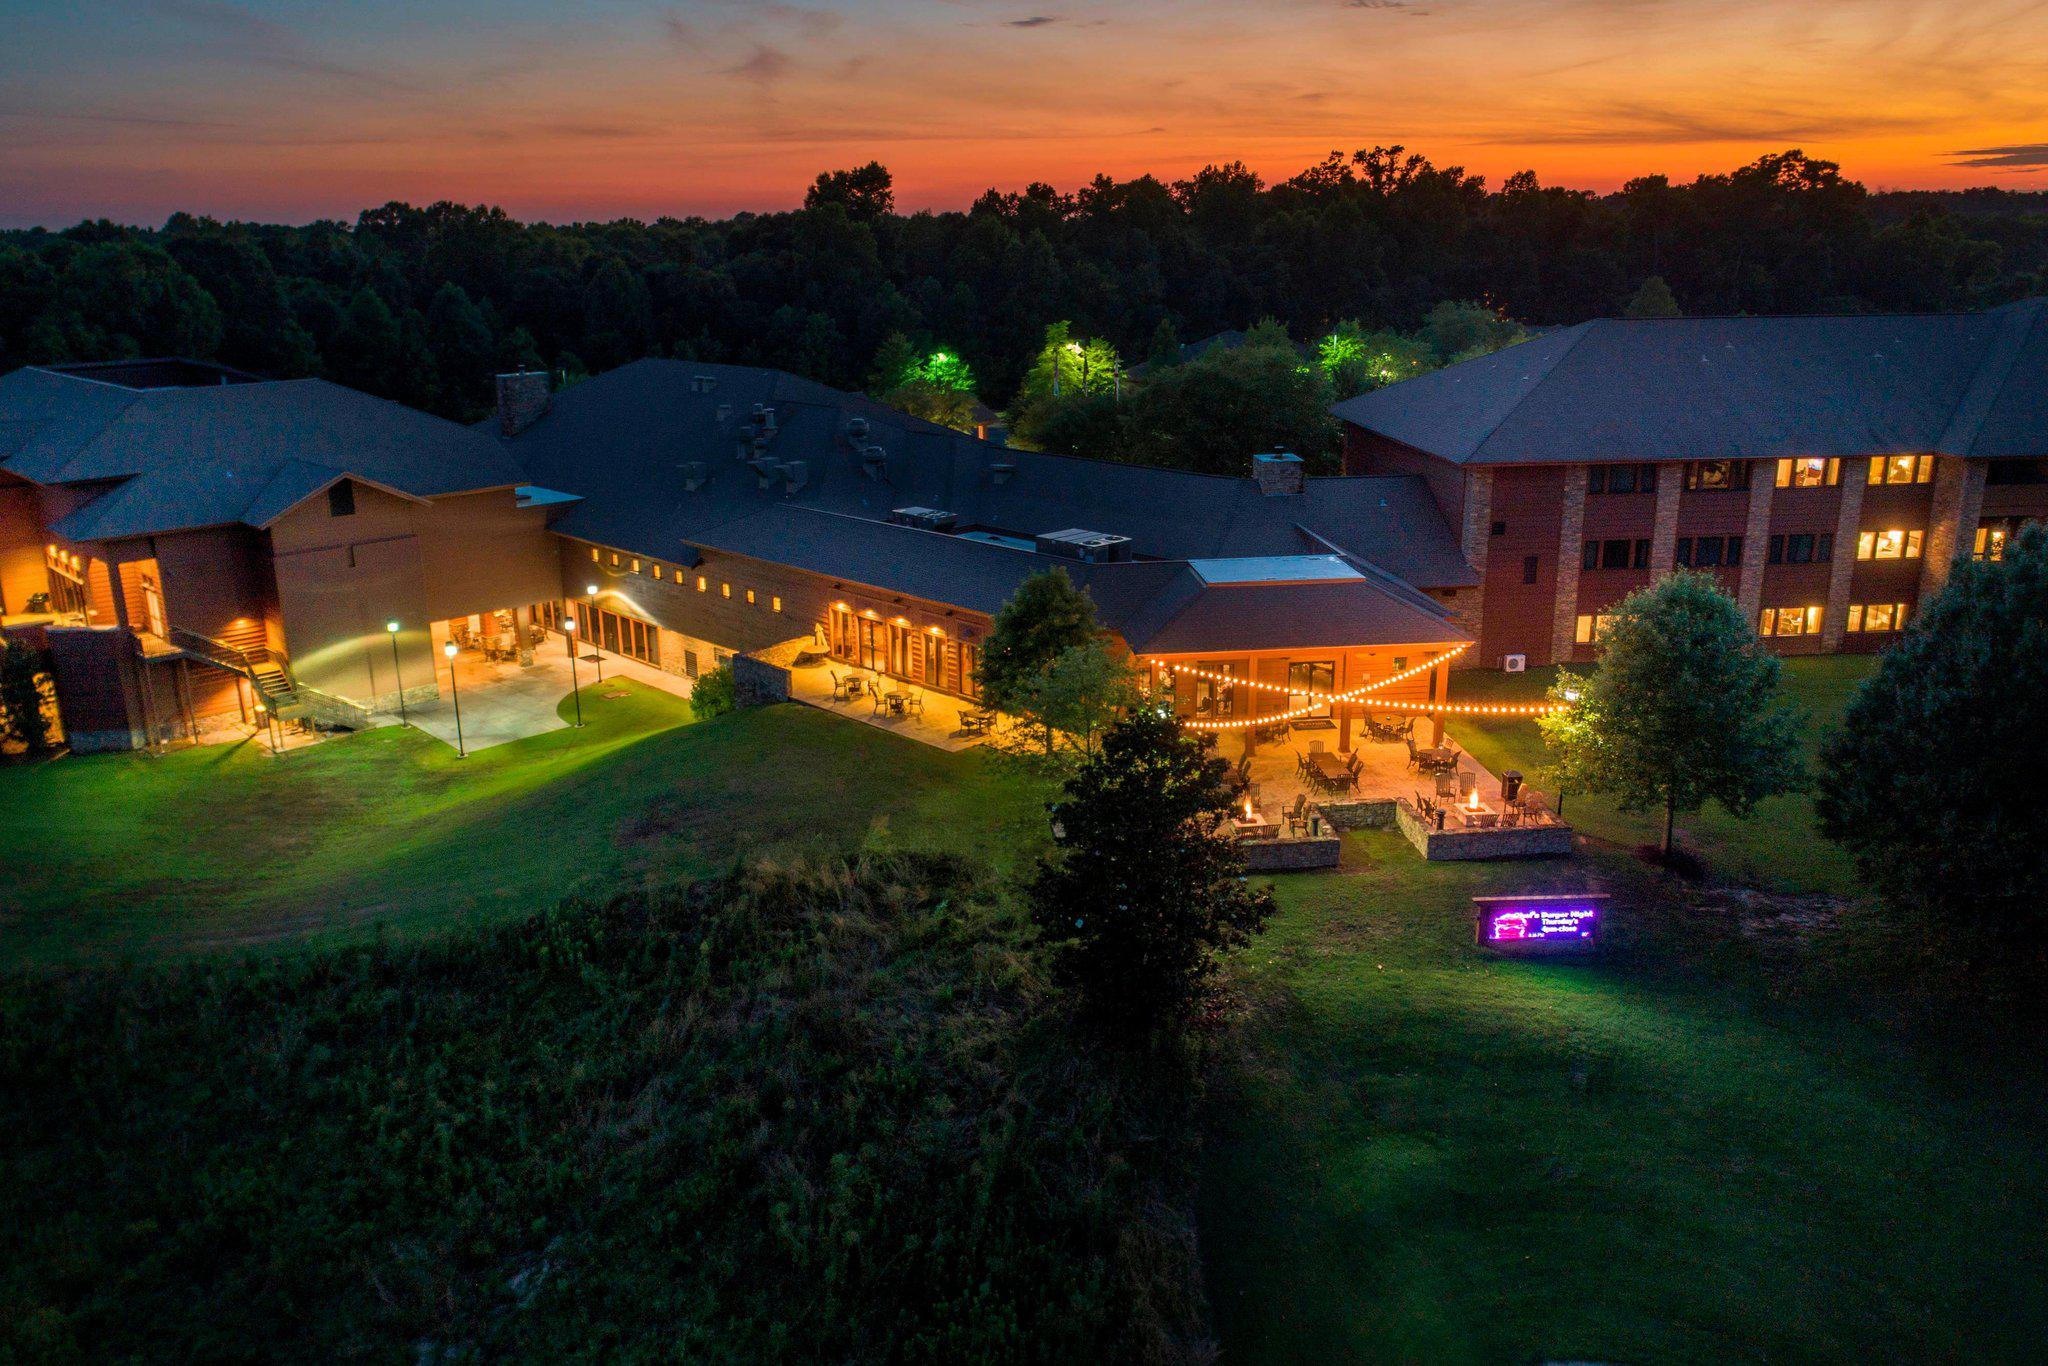 Montgomery Marriott Prattville Hotel & Conference Center at Capitol Hill